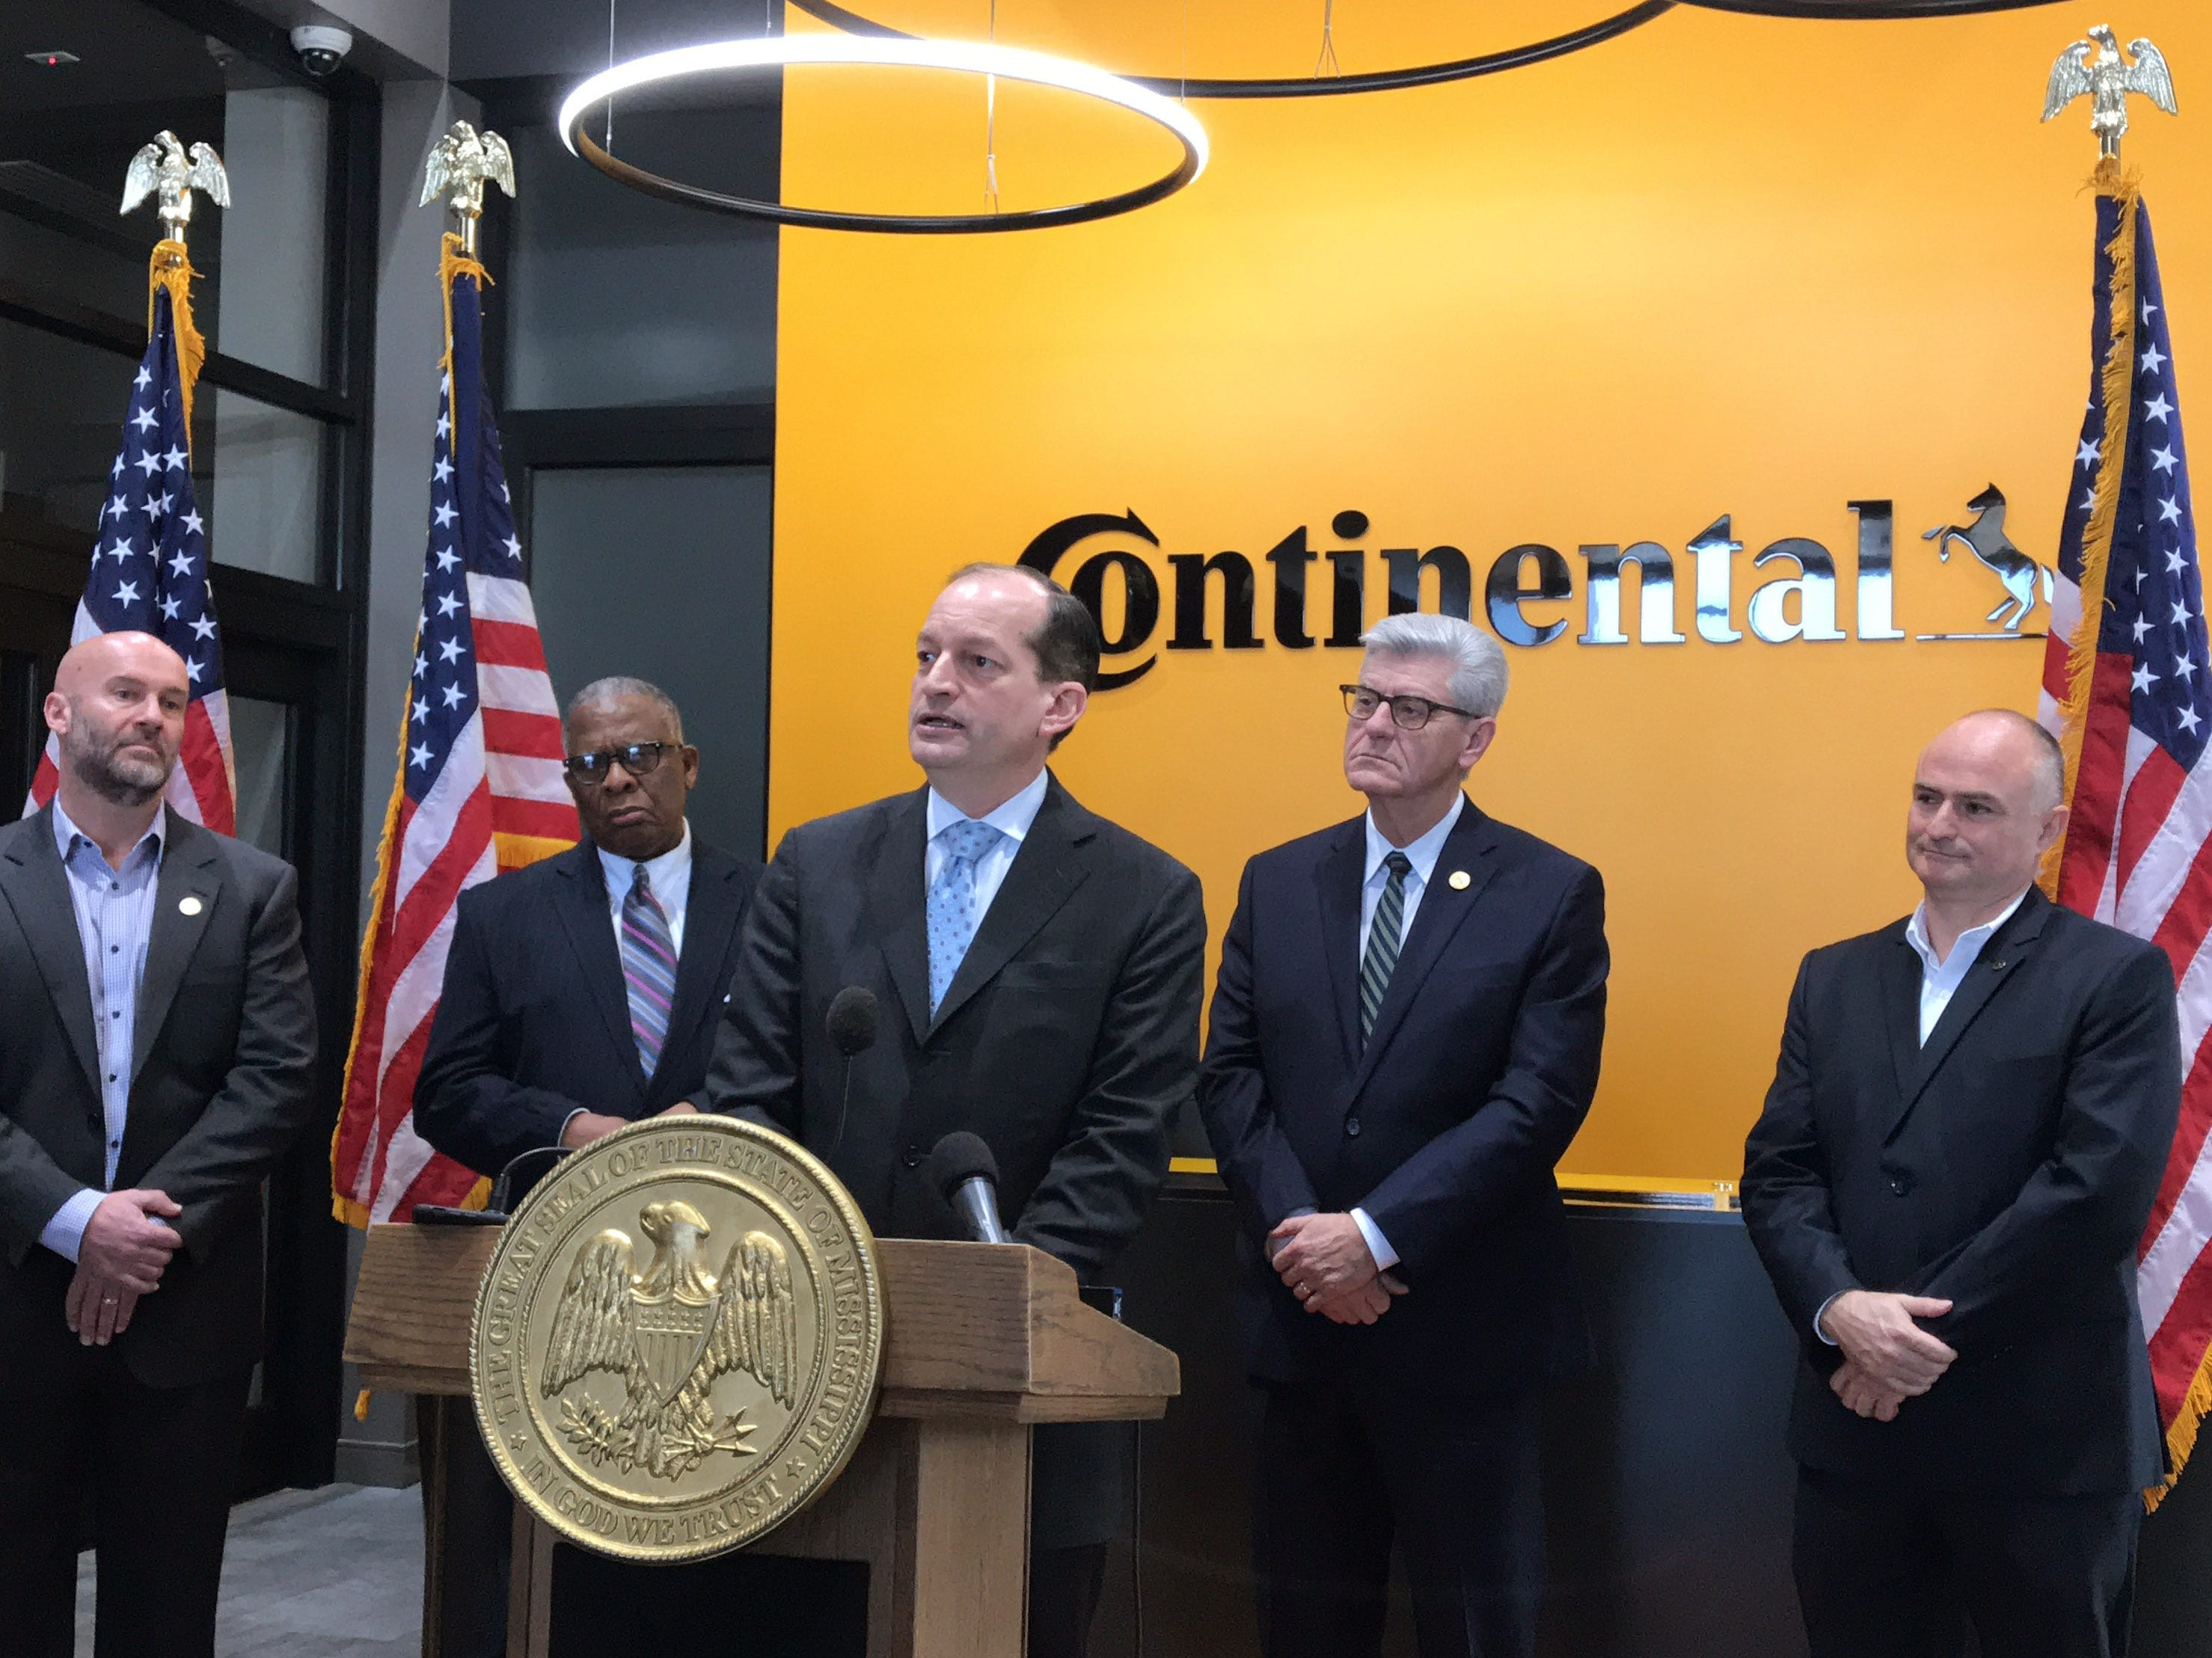 U.S. Sec of Labor Alexander Acosta (center) spoke to members of the press following a tour of the Continental Tire the Americas training facility in Clinton. Pictured left to right are; Paul Williams, Executive VP of Continental Tire the Americas;  George Flaggs, Vicksburg Mayor; Alexander Acosta, U.S. Sec. of Labor; Gov. Phil Bryant and Michael Egner, Plant Manager. Friday, Feb. 8, 2019.